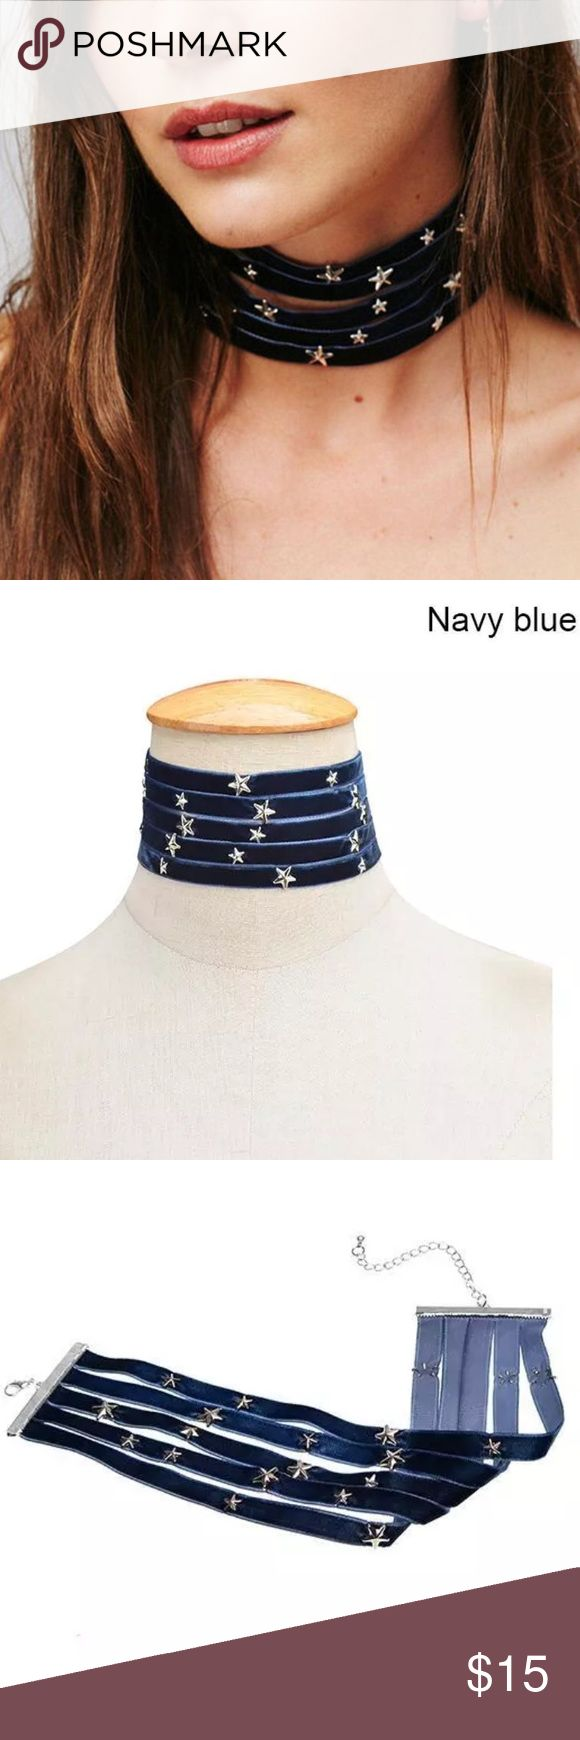 New✨Silver Stars & Navy Blue Velvet Choker  😍✨✨ ✨Fashion Jewelry ✨Alloy, Silver Plated   🔸Brand New✨ 🔸PRICE IS FIRM- already listed at lowest price  🔸If you want to save please look into bundling  🔸In Stock 🔸No Trades 🔸Will ship within 24 hours Monday-Friday  🚫Please -NO- Offers on items priced $10 and under AND ON SALE ITEMS‼️‼️‼️  🚫Serious Inquiries Only❣️  🔹Bundle one or more items from my boutique to only pay one shipping fee✨ Jewelry Necklaces